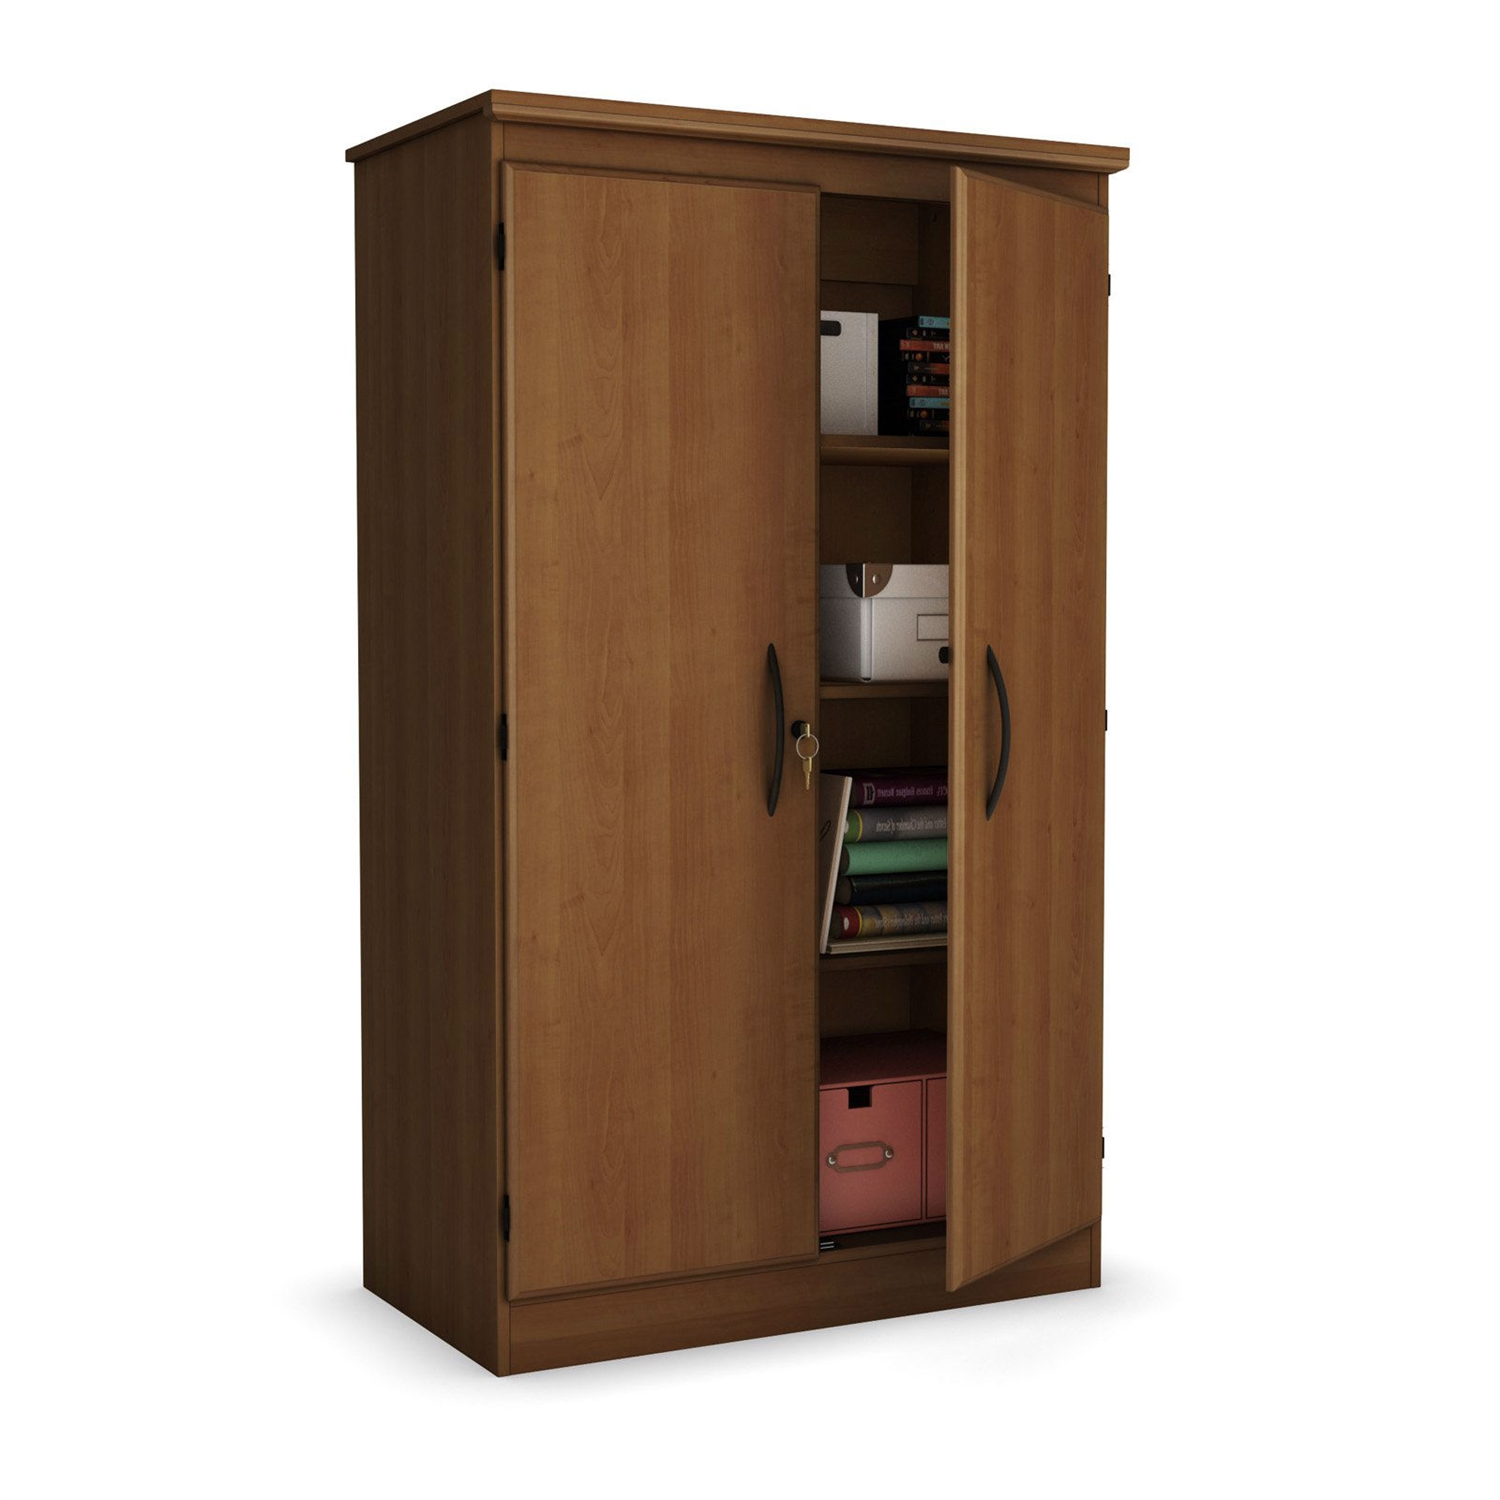 Cherry 2 Door Storage Cabinet Wardrobe Armoire For Bedroom Living Room Or Home Office